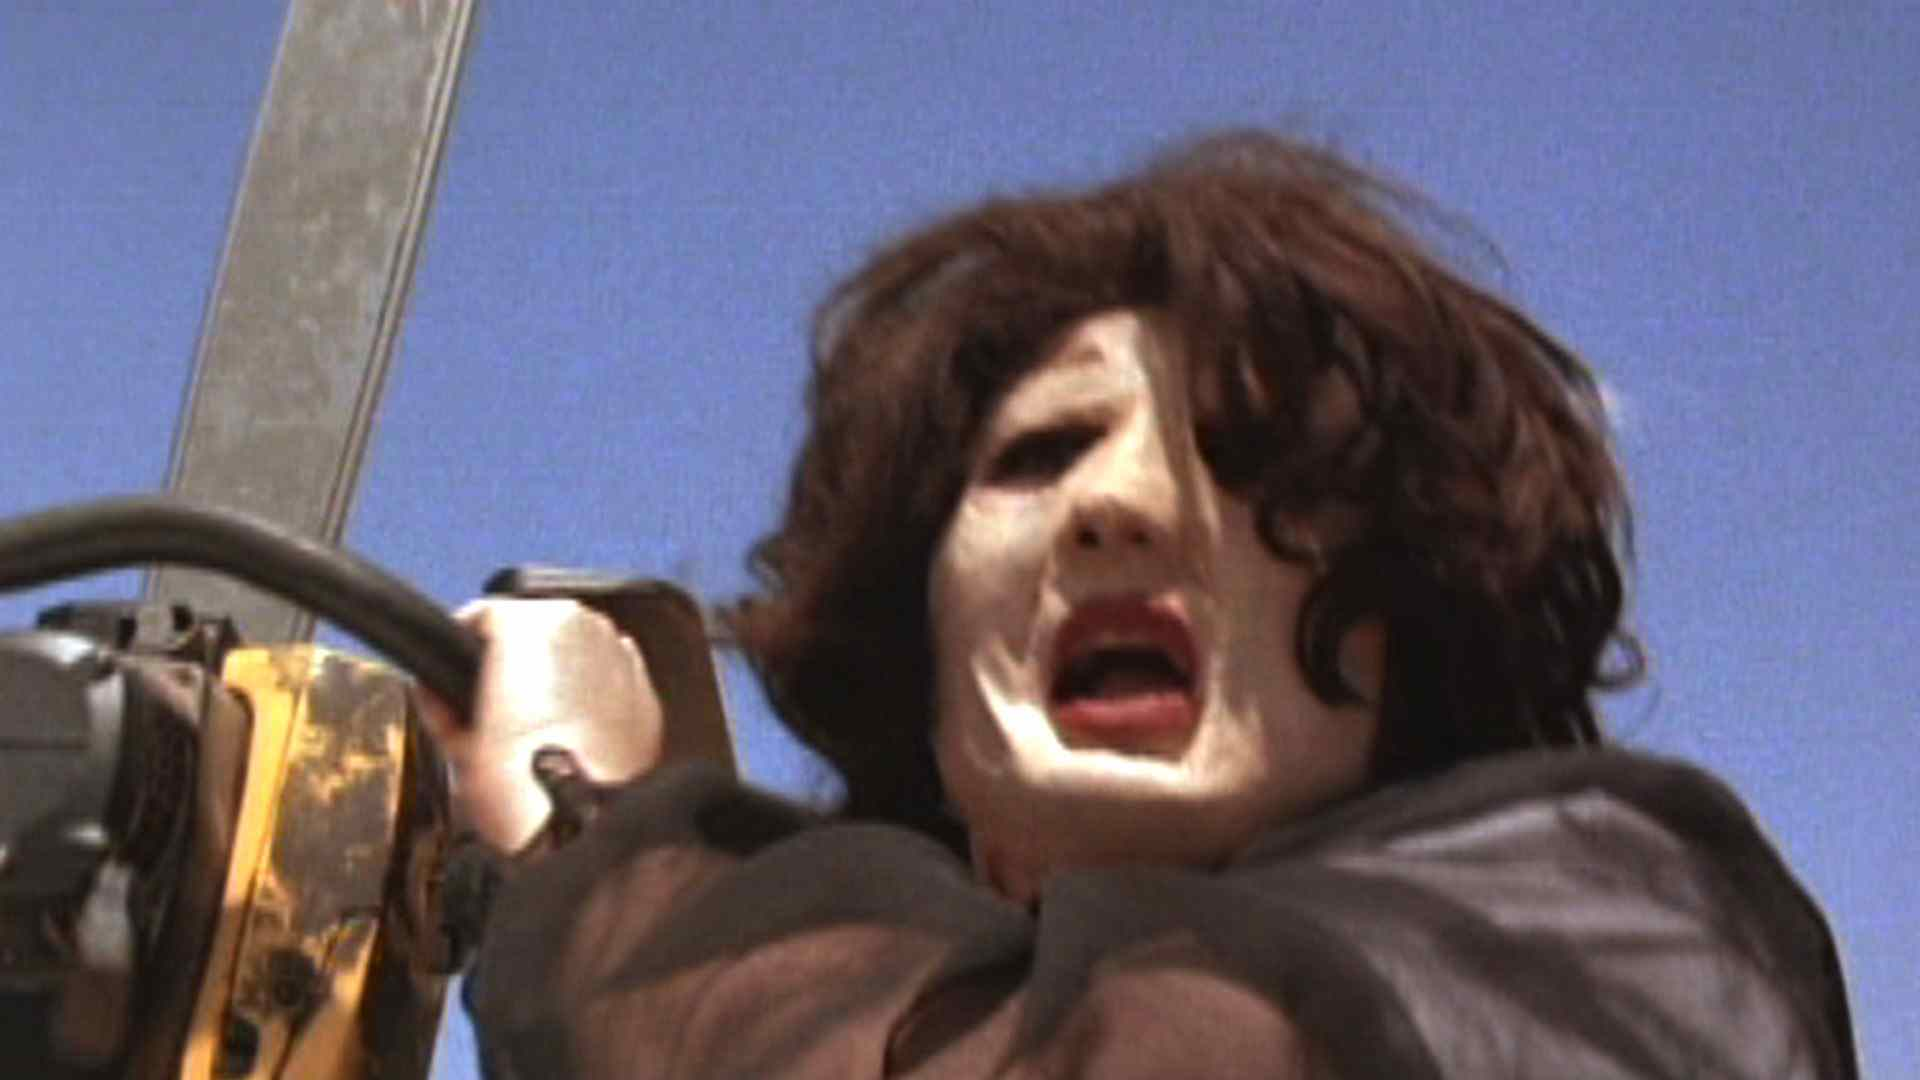 4. The Texas Chainsaw Massacre The Next Generation